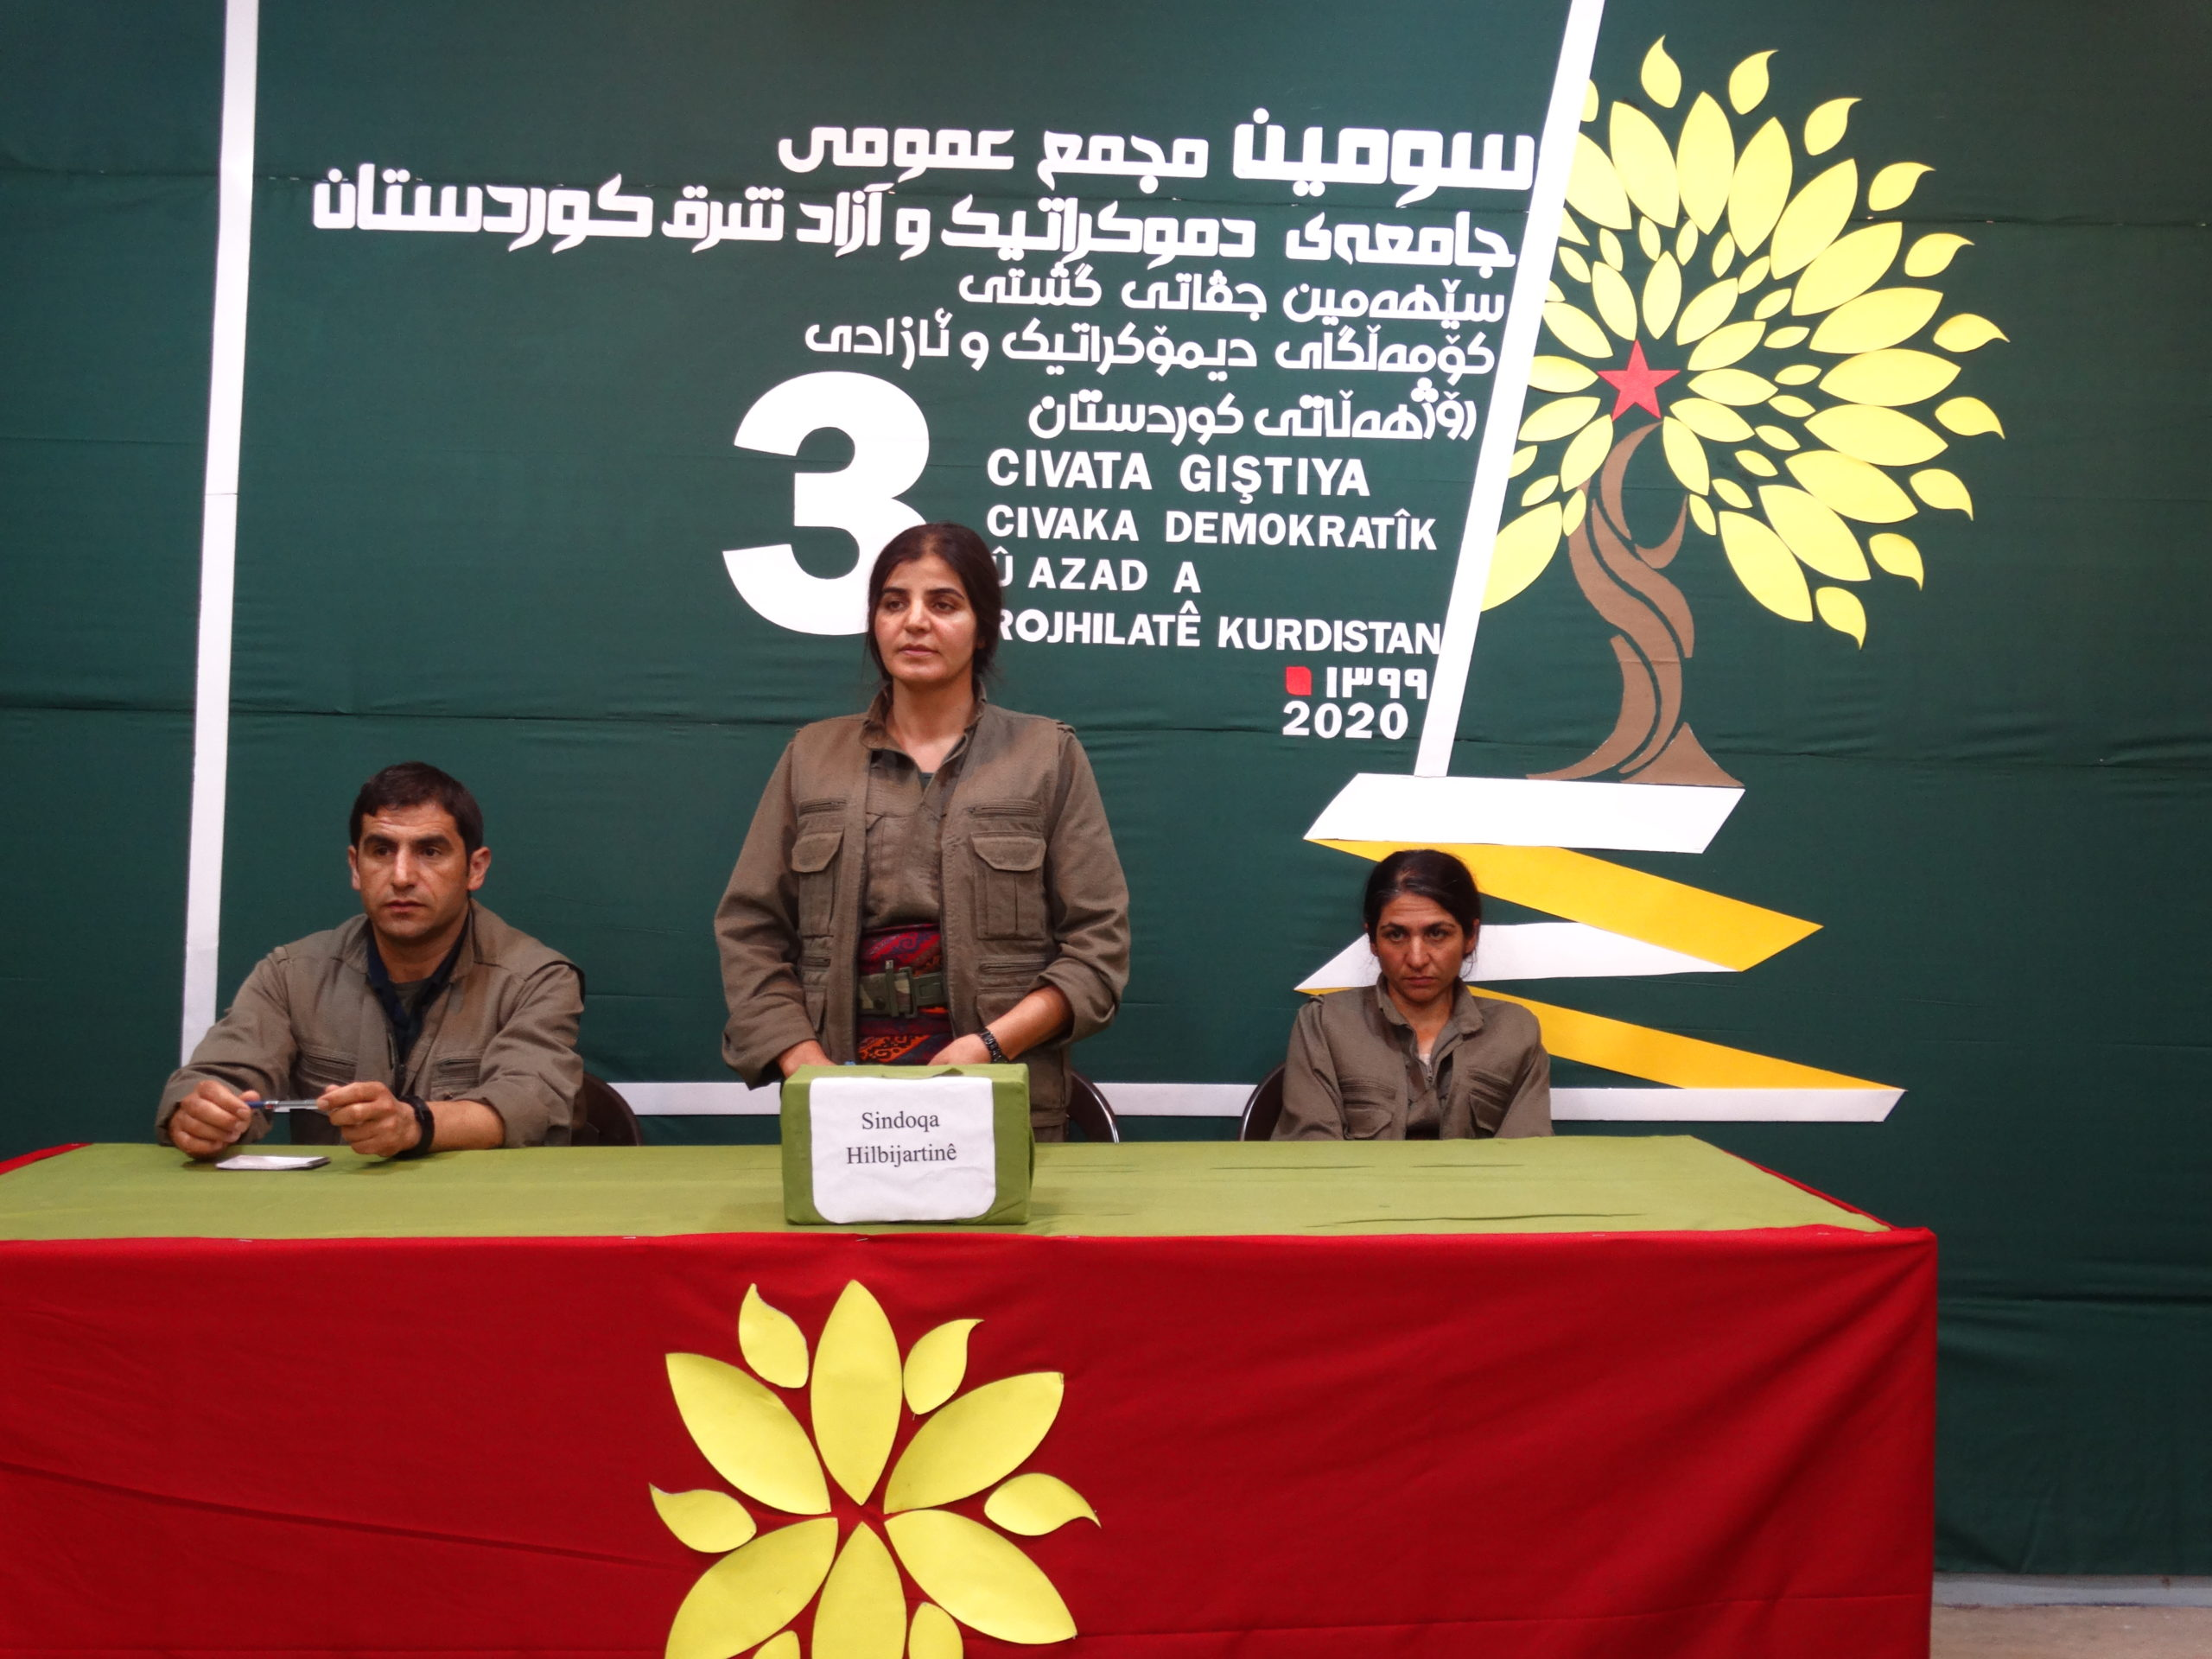 Organize the society and liberate Kurdistan with the revolutionary spirit of the people